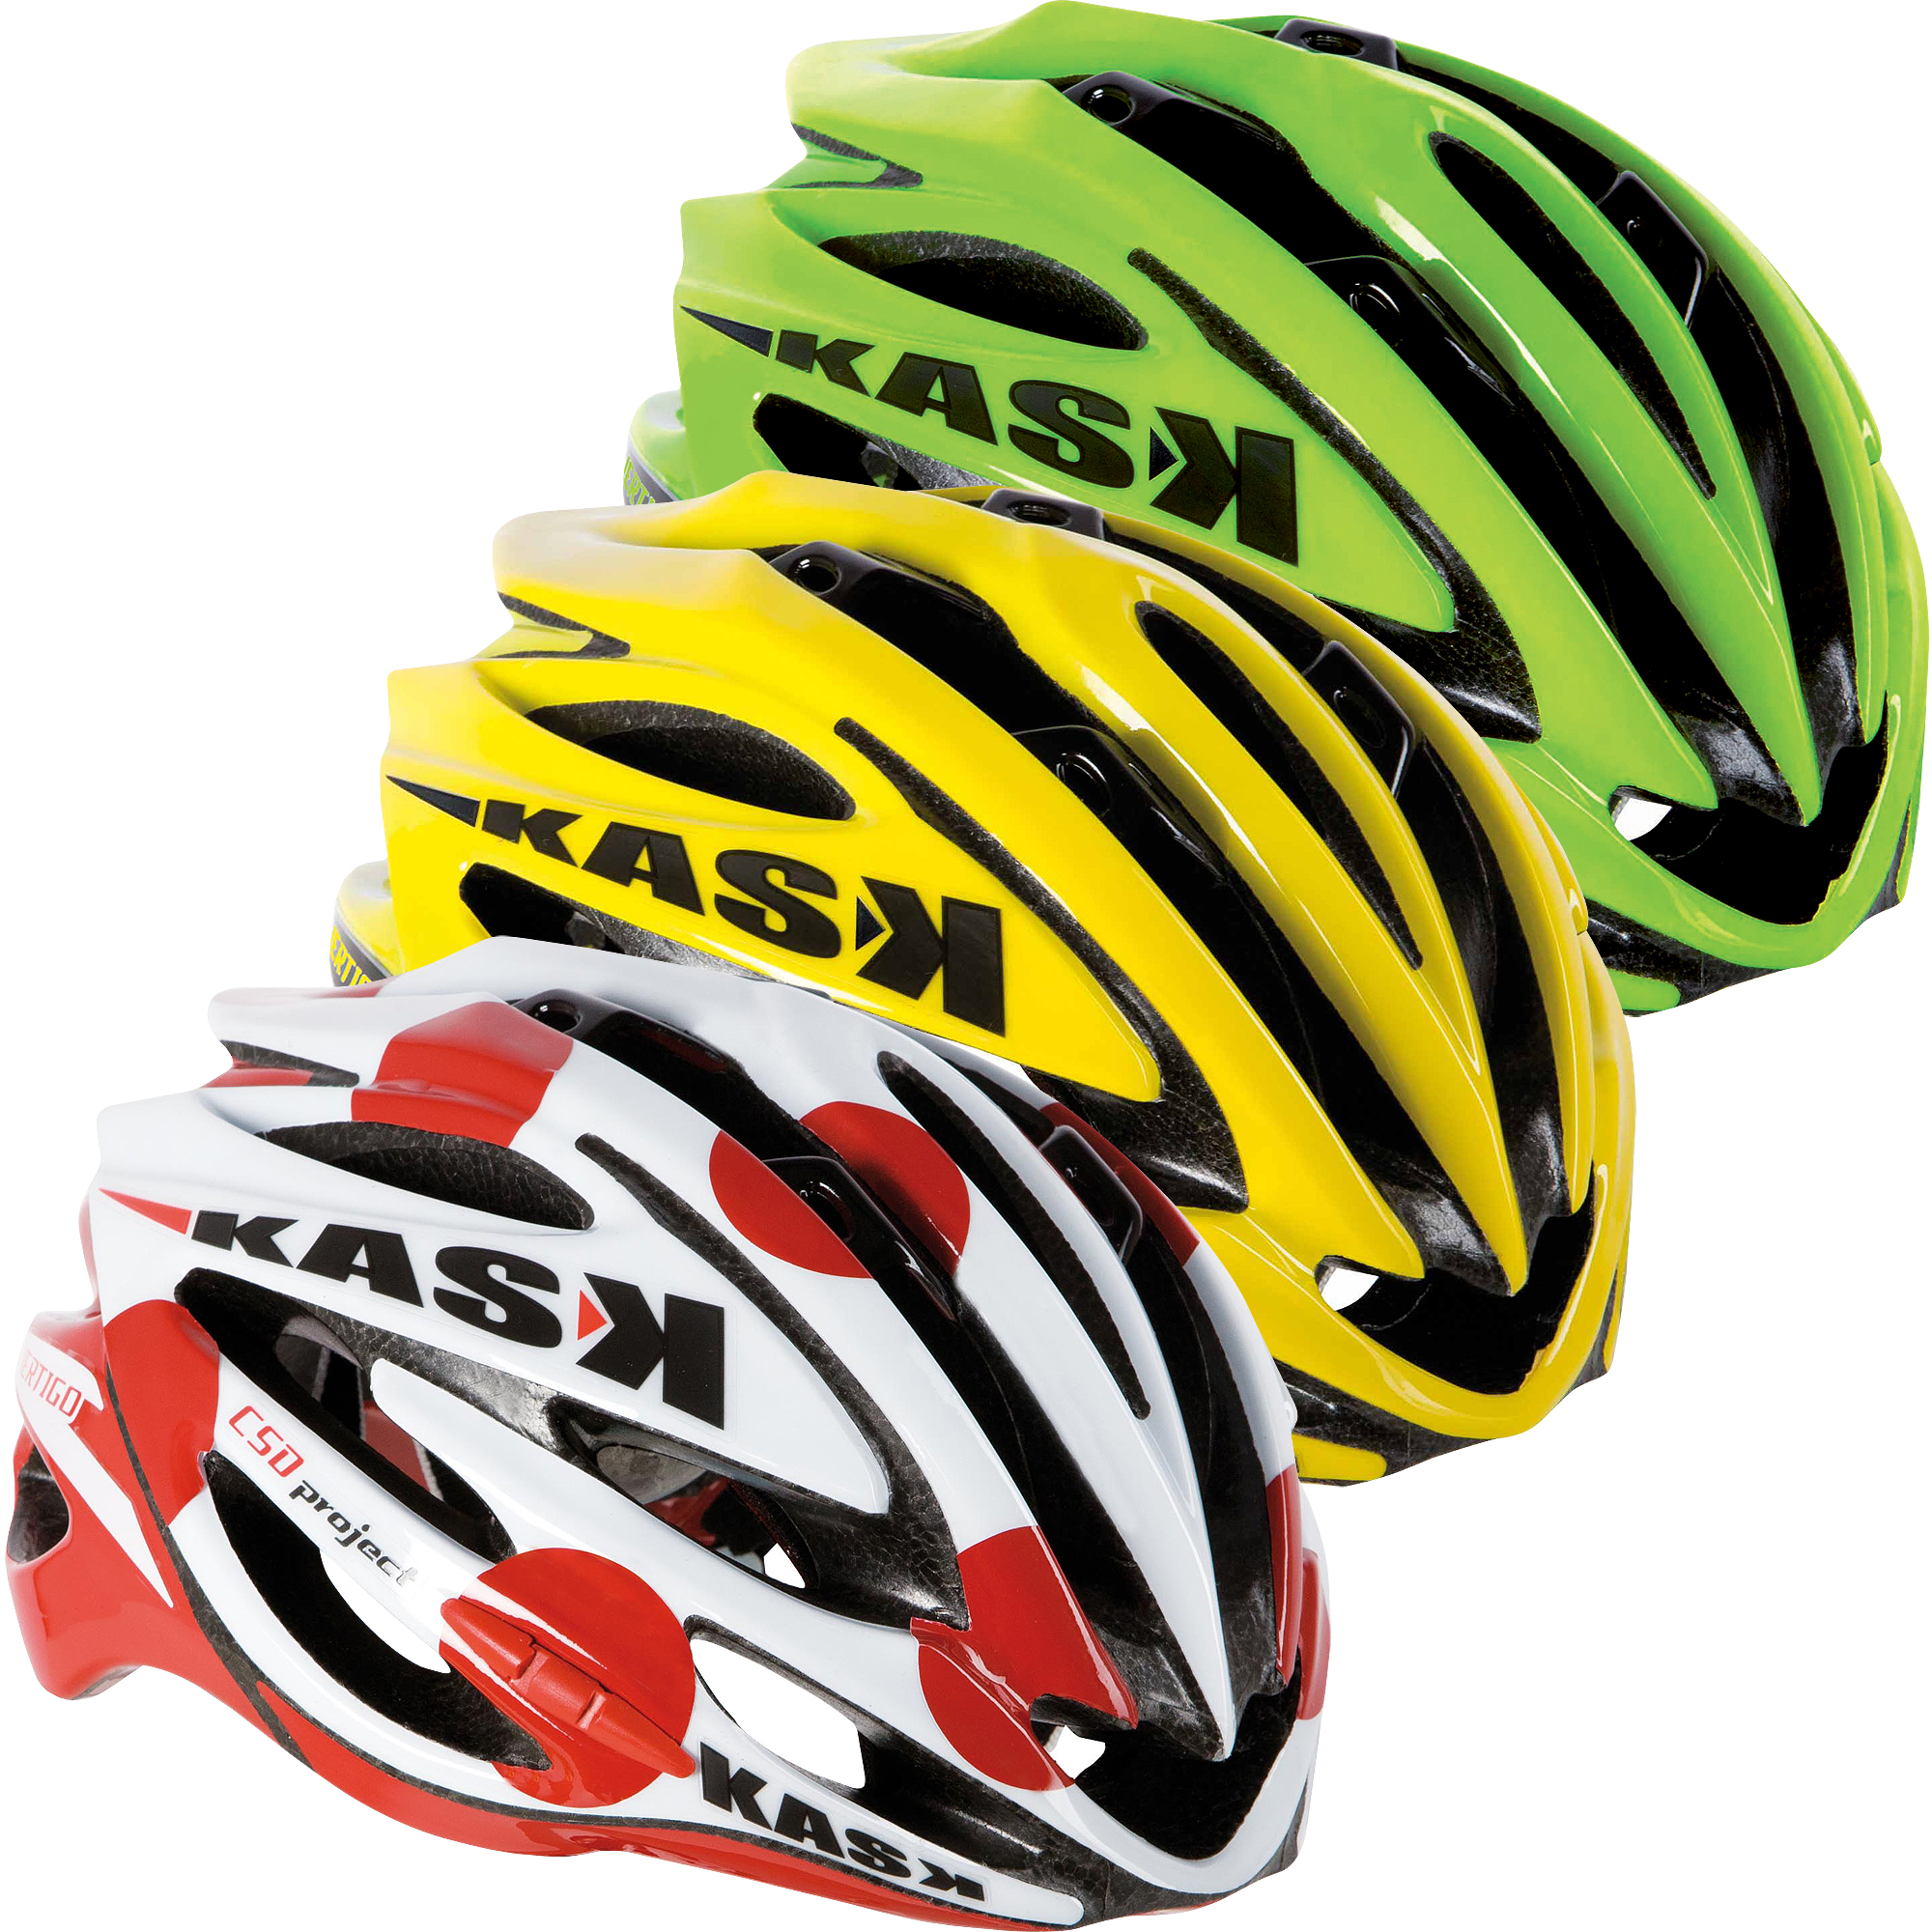 Kask Vertigo Road Helmet - Tour de France Edition 2013